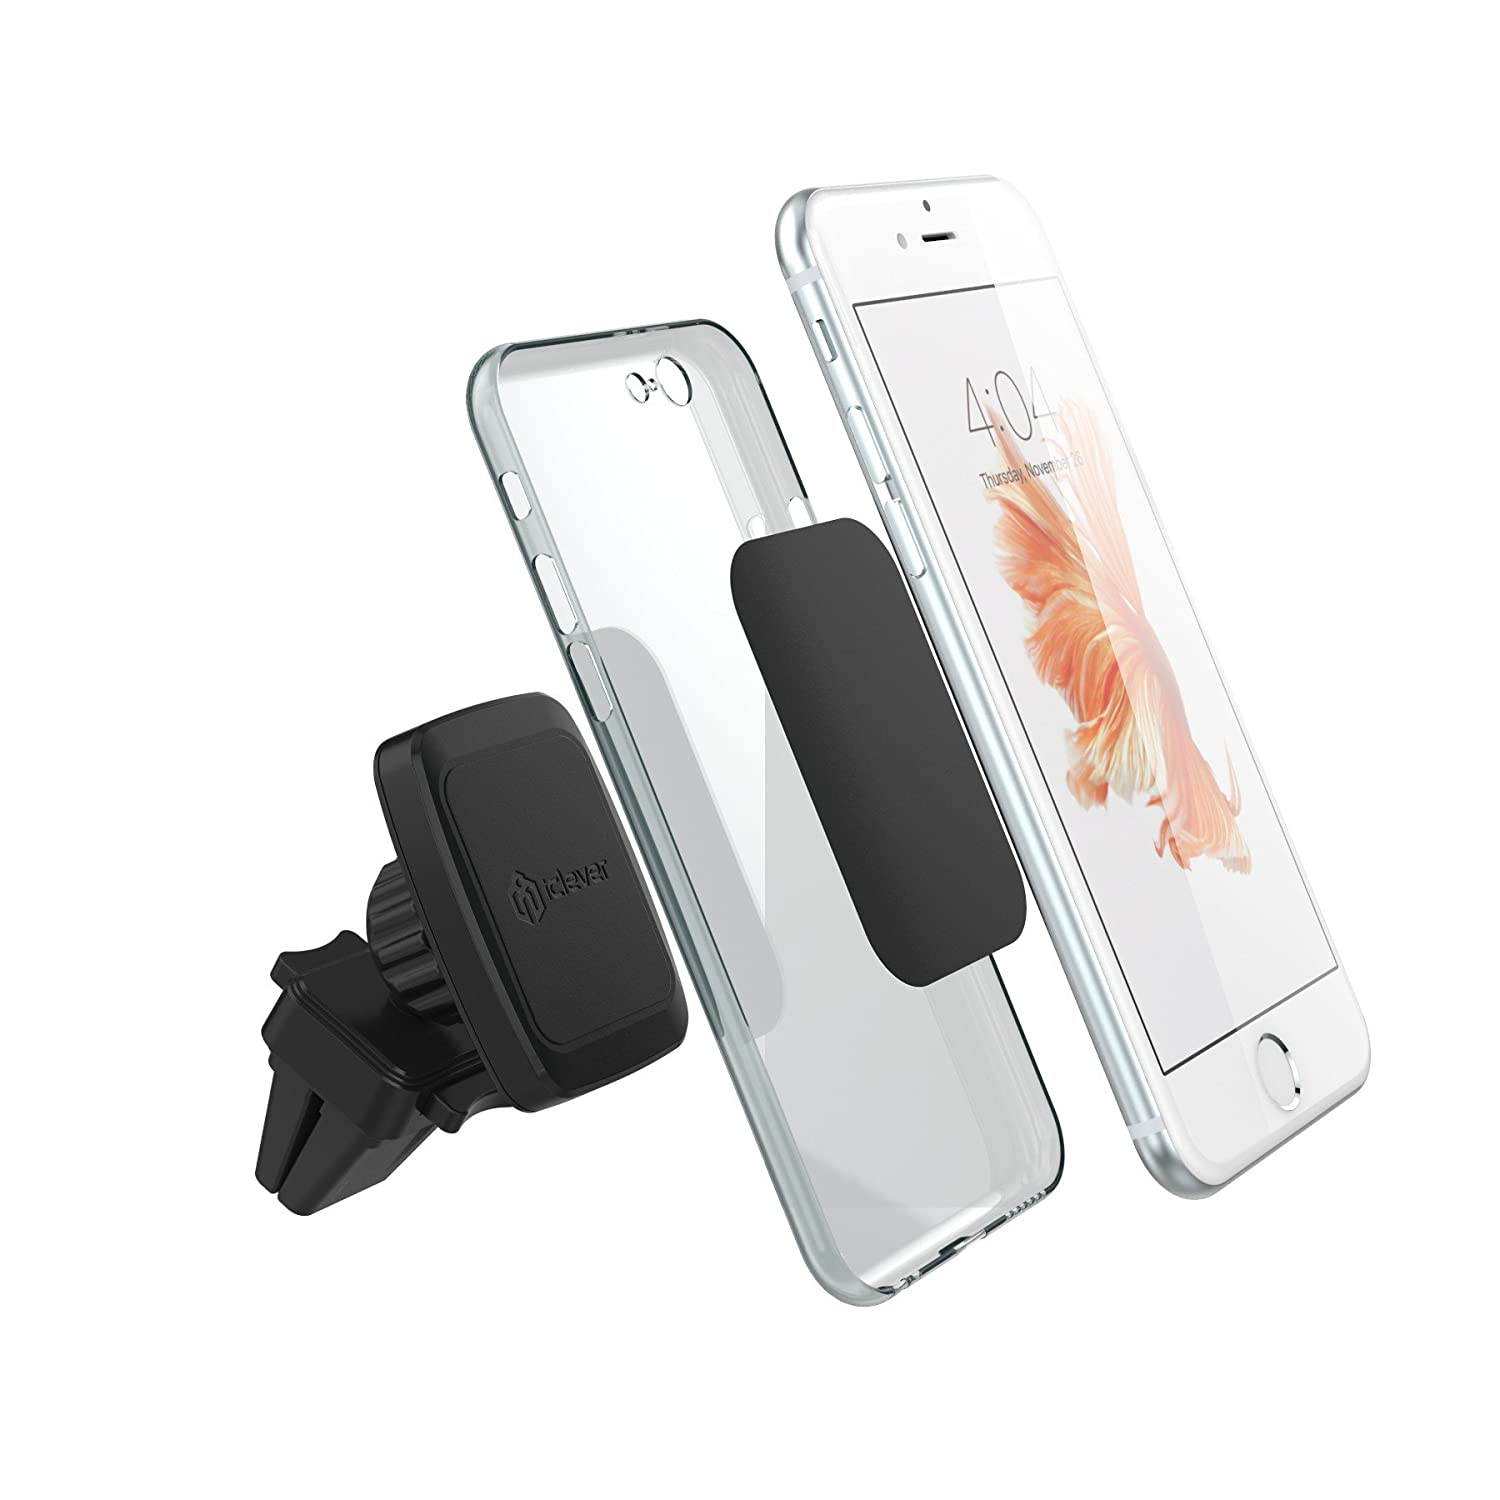 Strong Magnetic Smartphone Car Cradle iClever Car Mount IC-CH07 Universal Air Vent Phone Holder